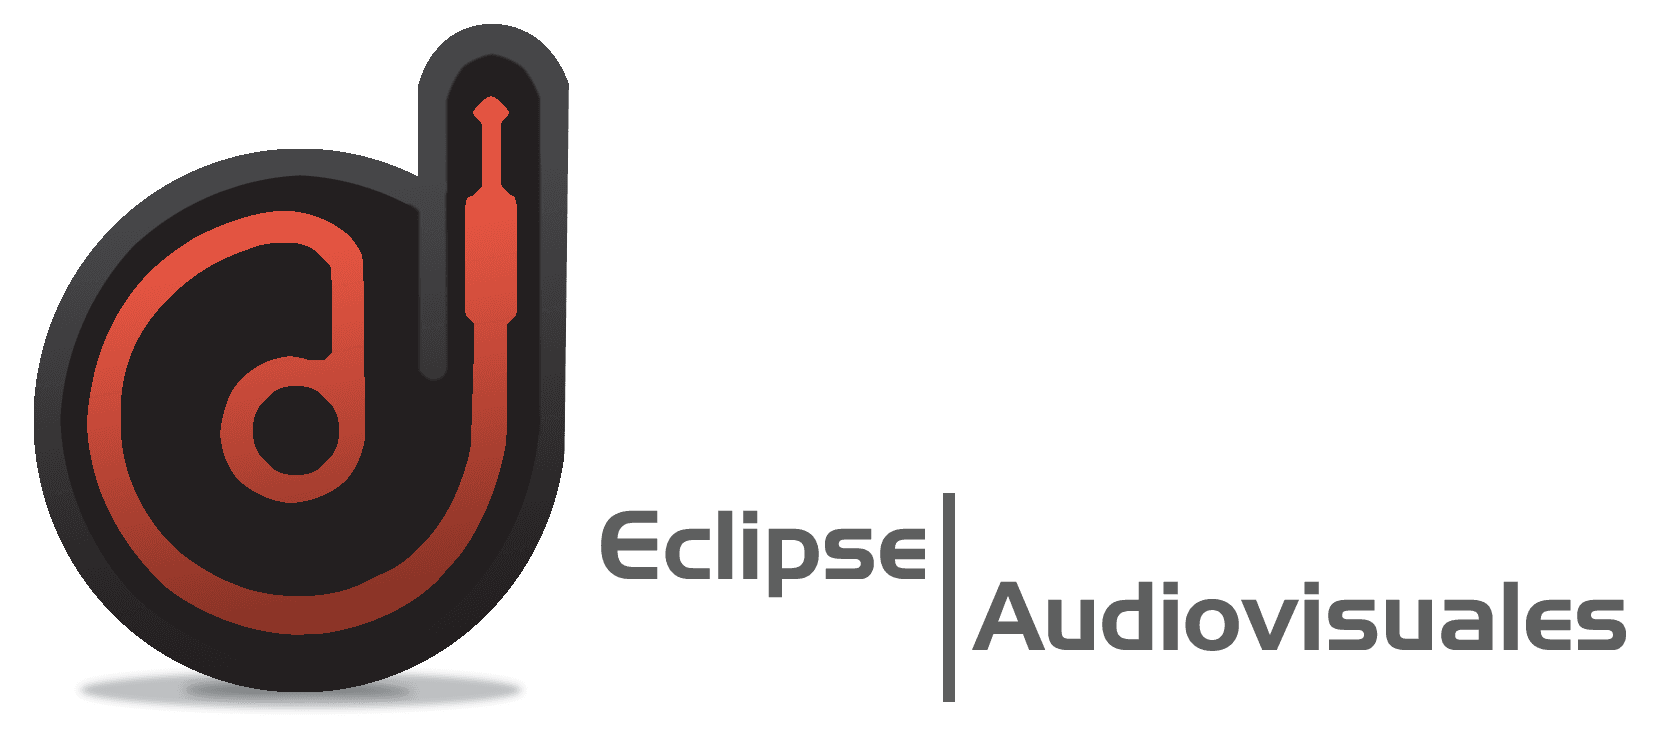 Eclipse Audiovisuales